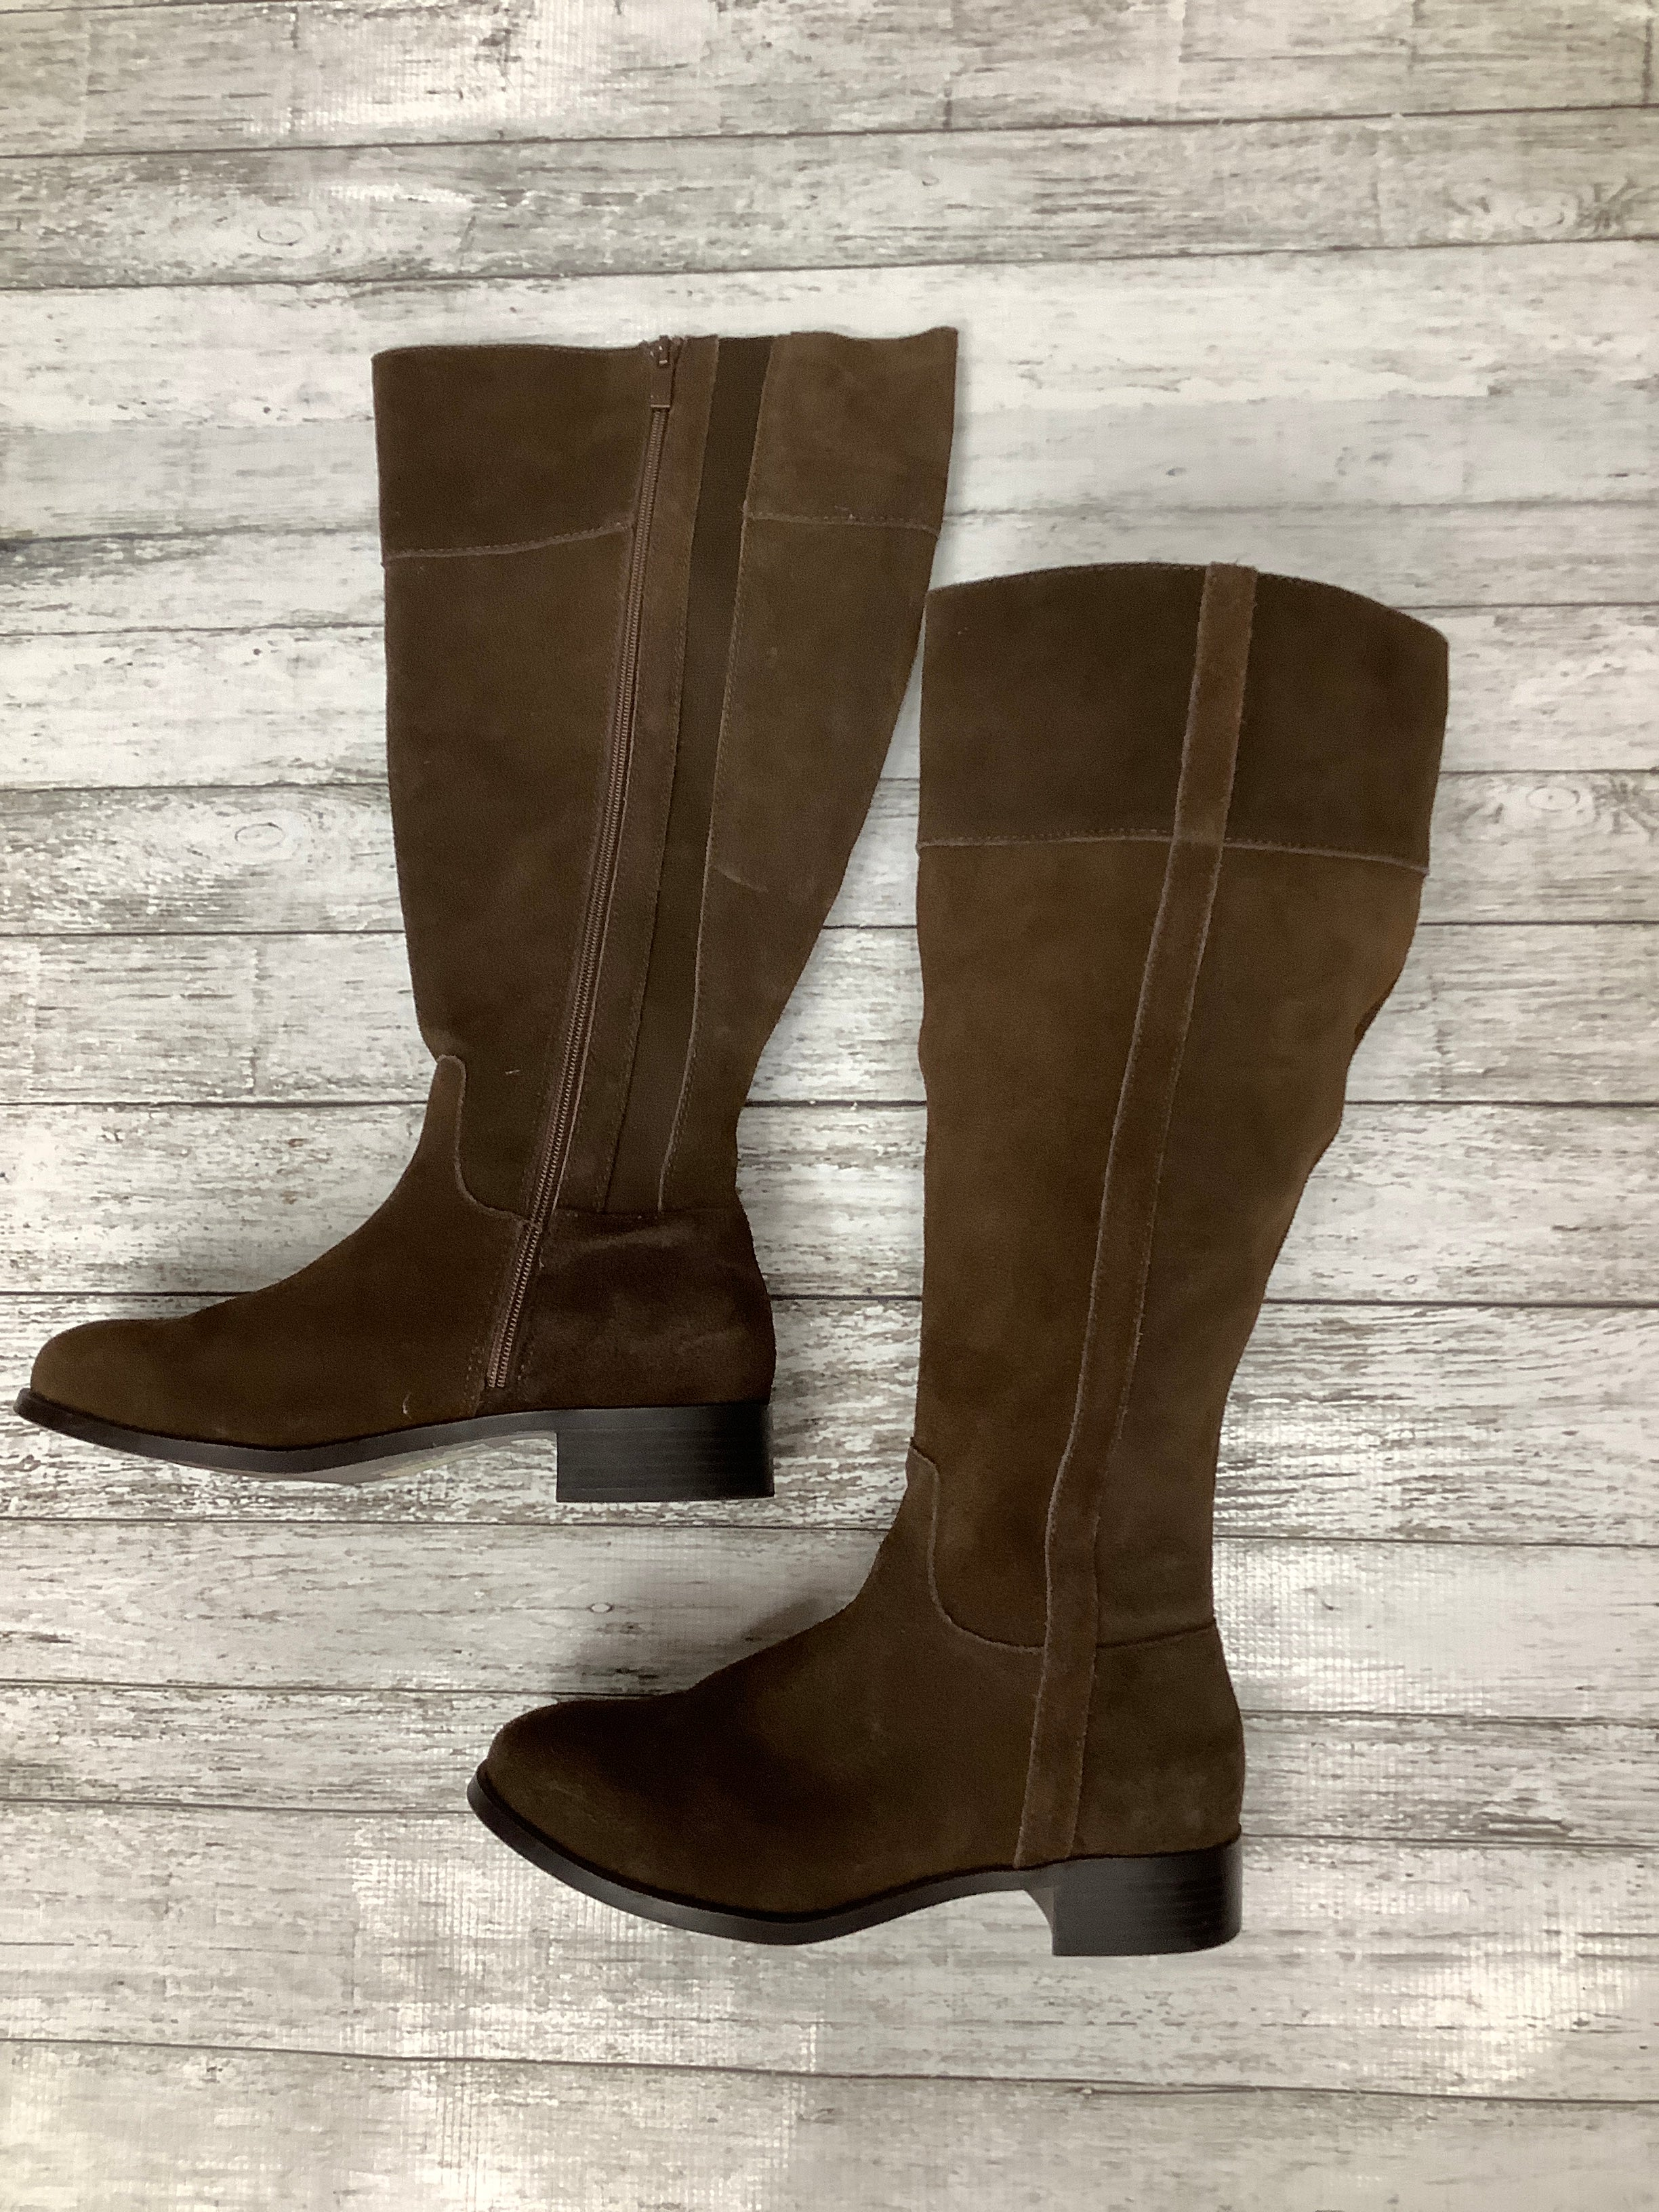 Primary Photo - brand: torrid , style: boots knee , color: brown , size: 7 , sku: 105-4189-3369